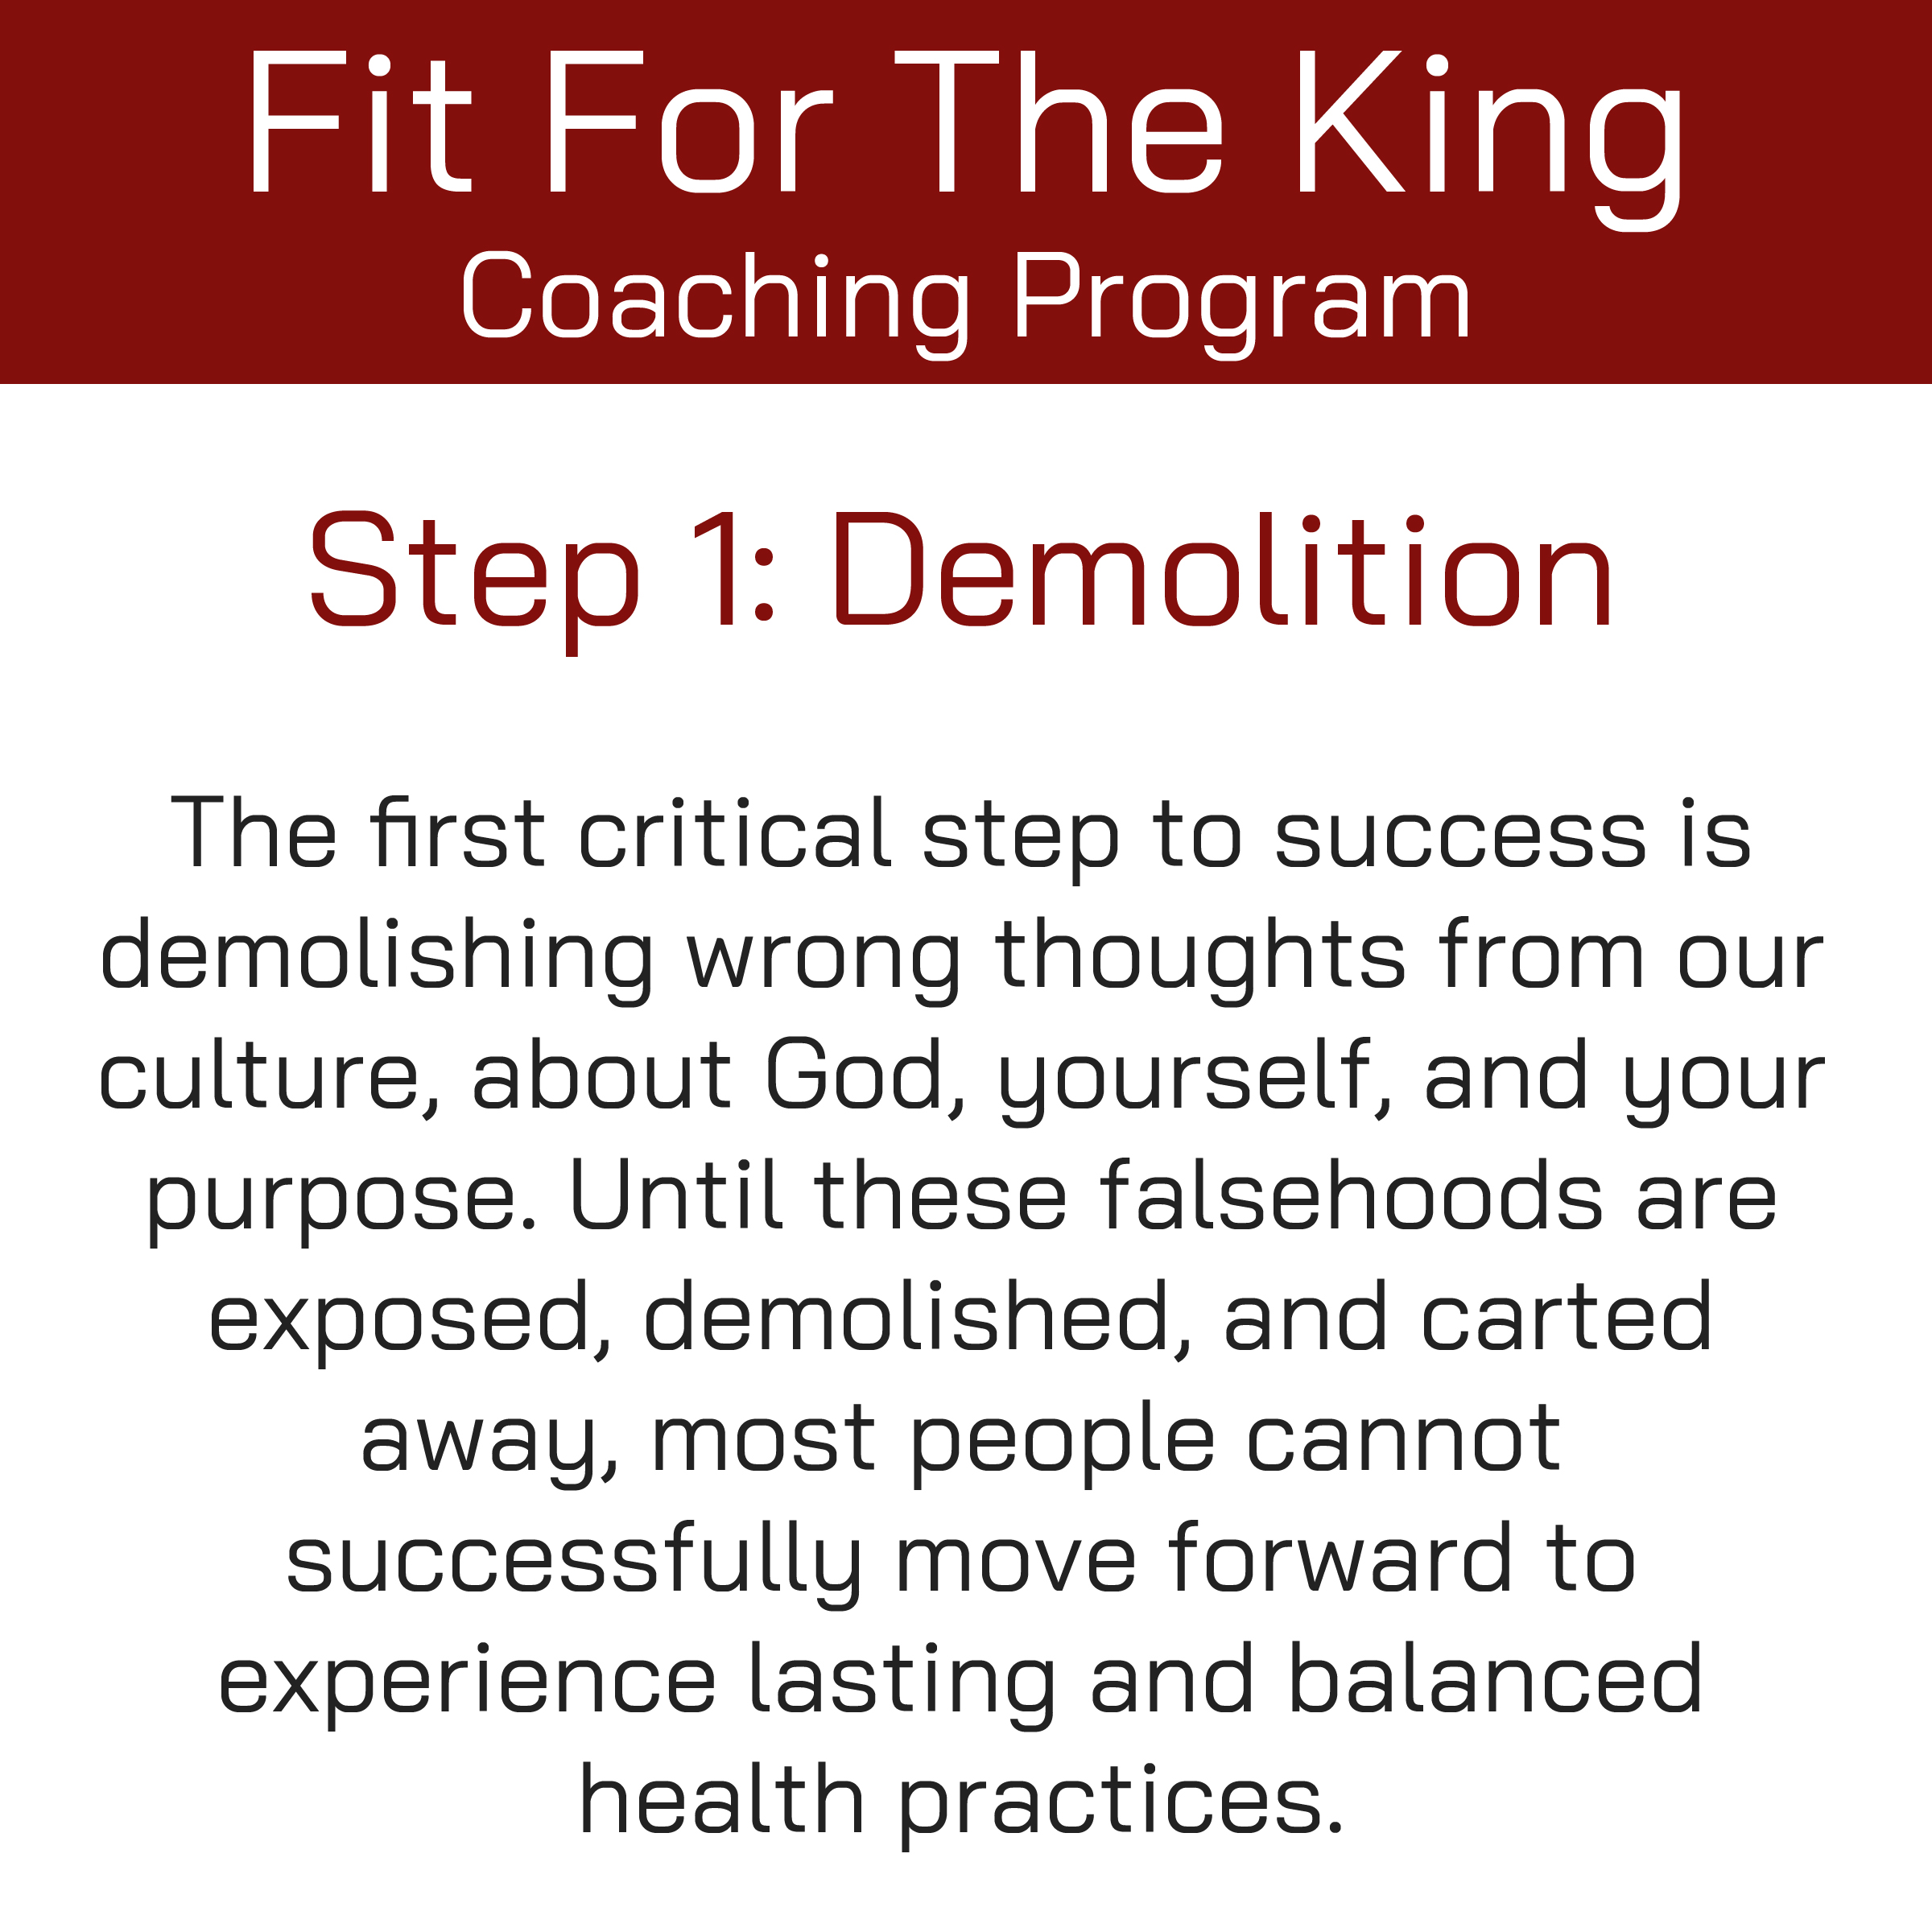 FFTK Coaching Program - Demolition